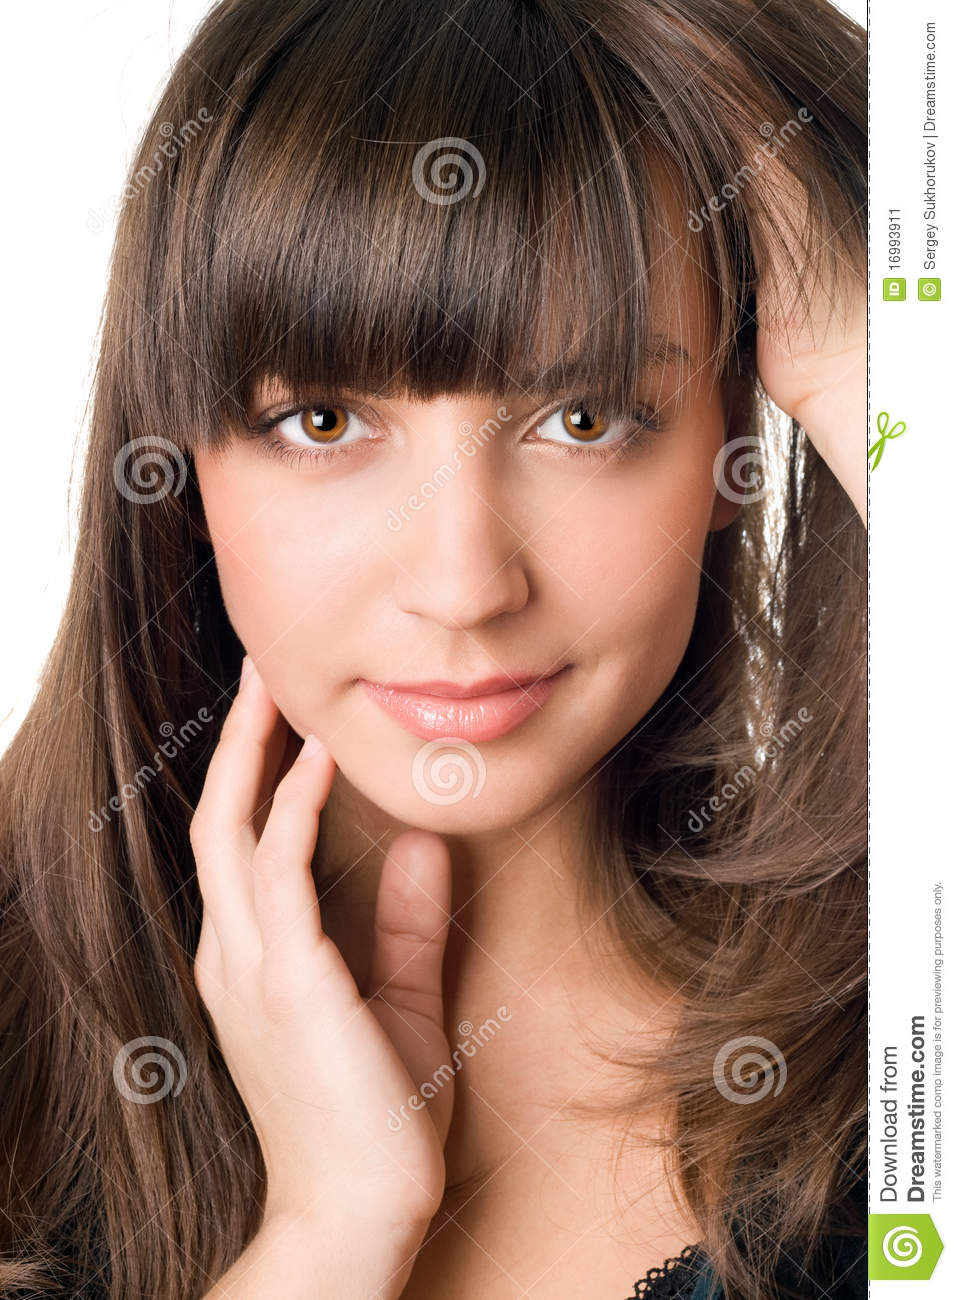 ... Woman With Dark Hair And Brown Eyes Stock Image - Image: 16993911